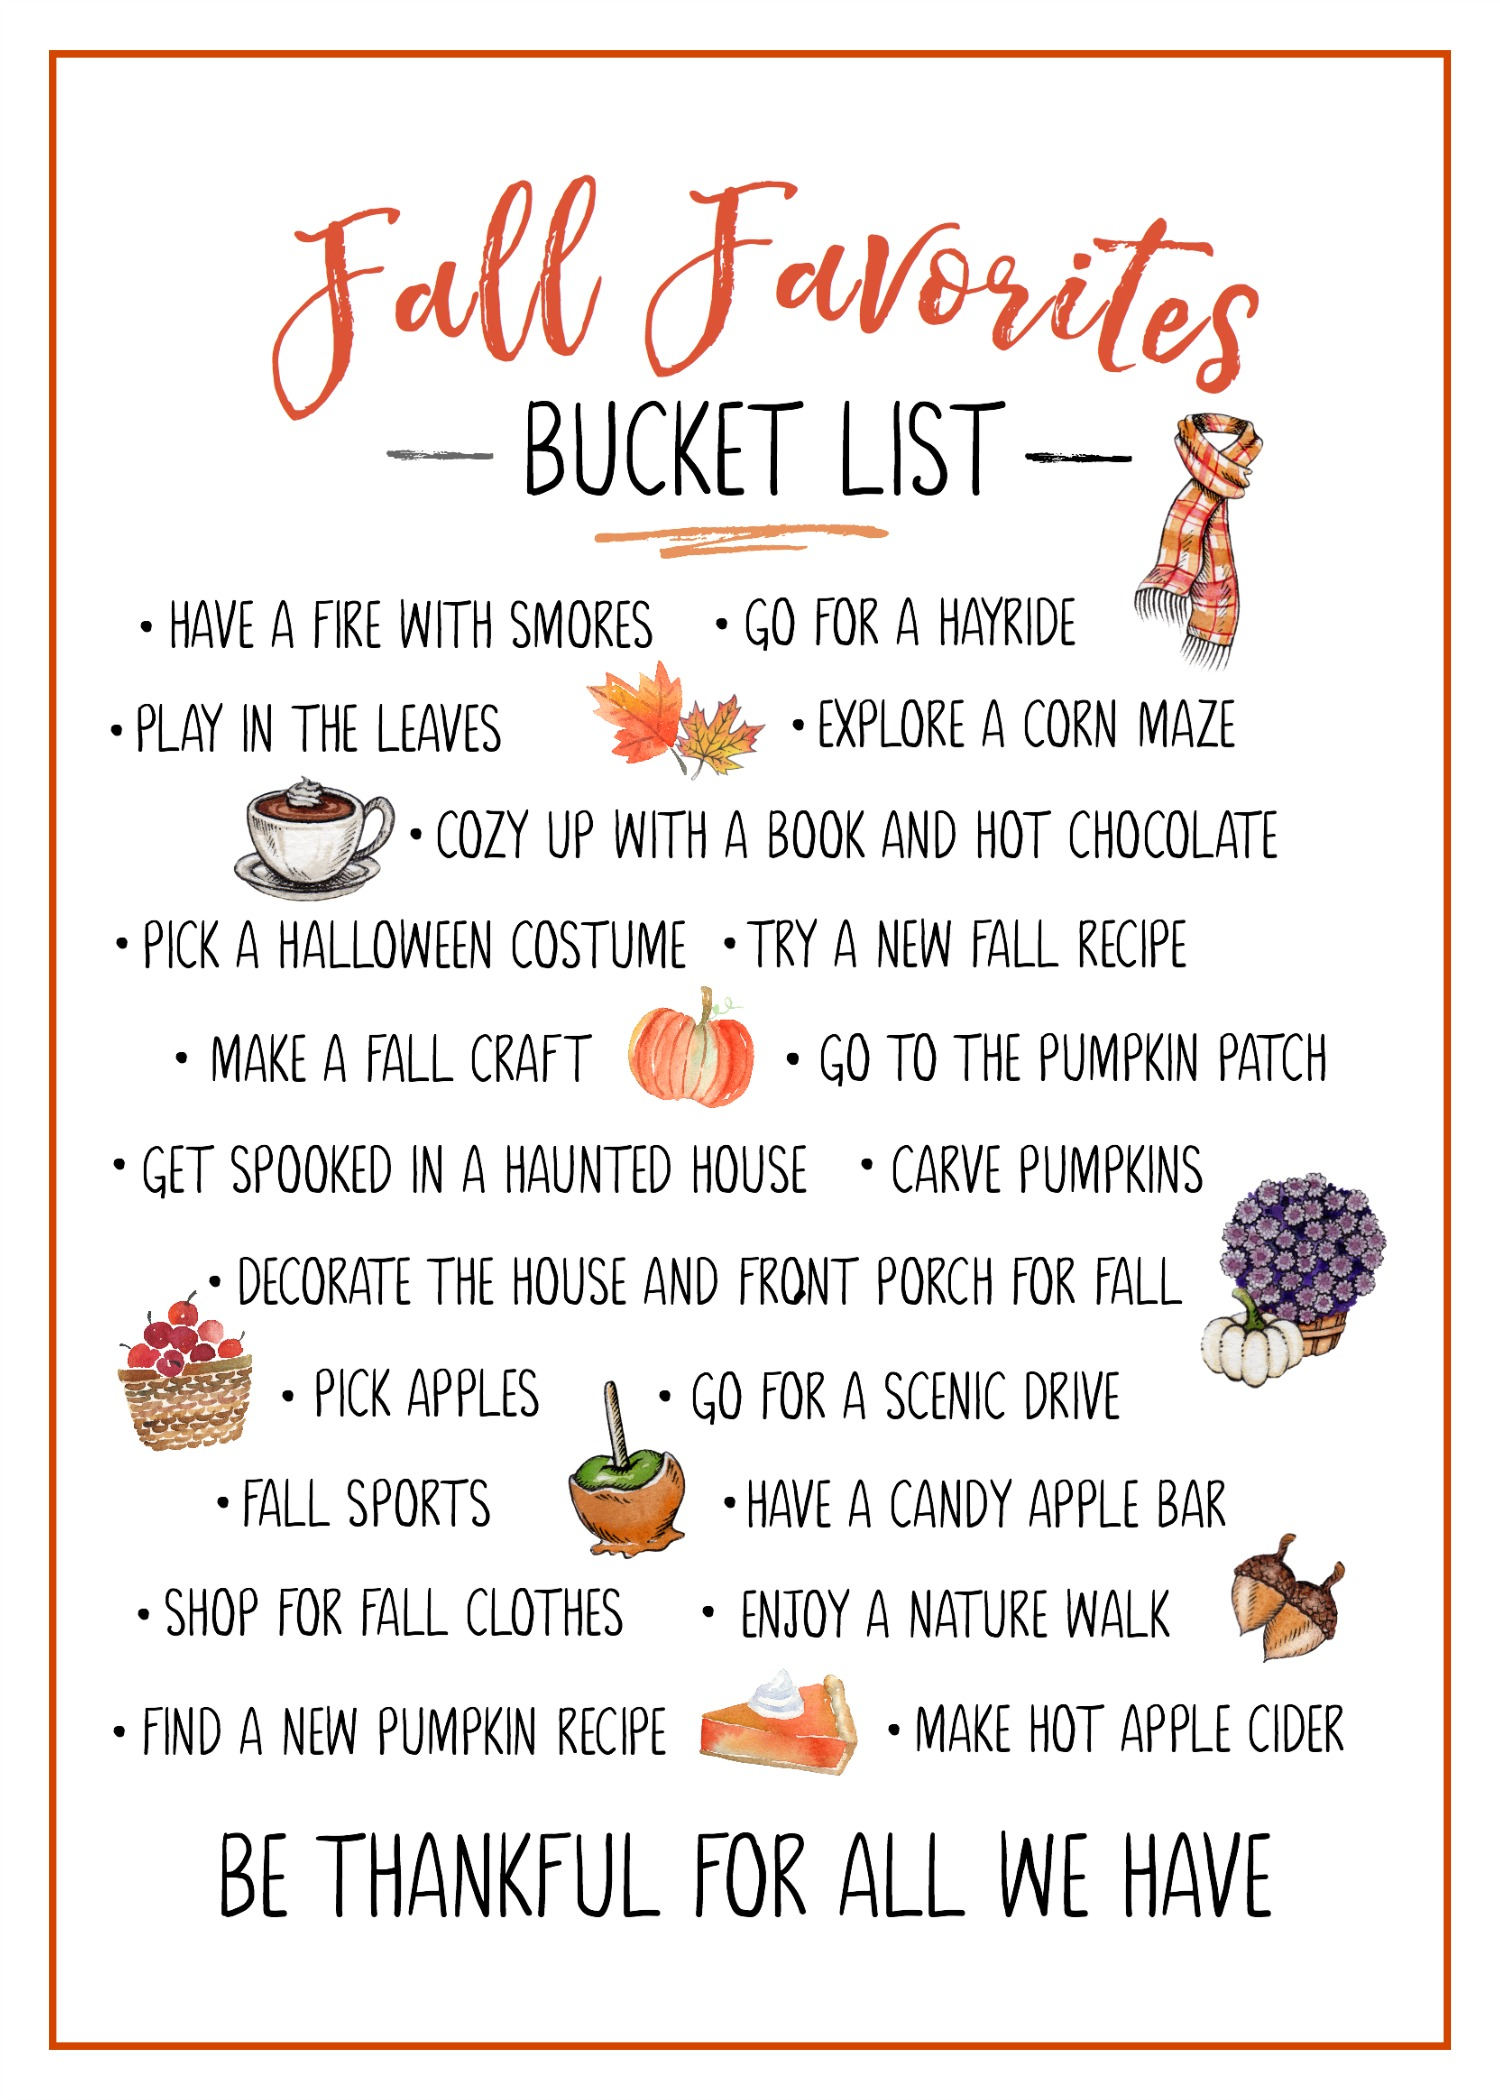 Cute fall favorites bucket list free fall printable.